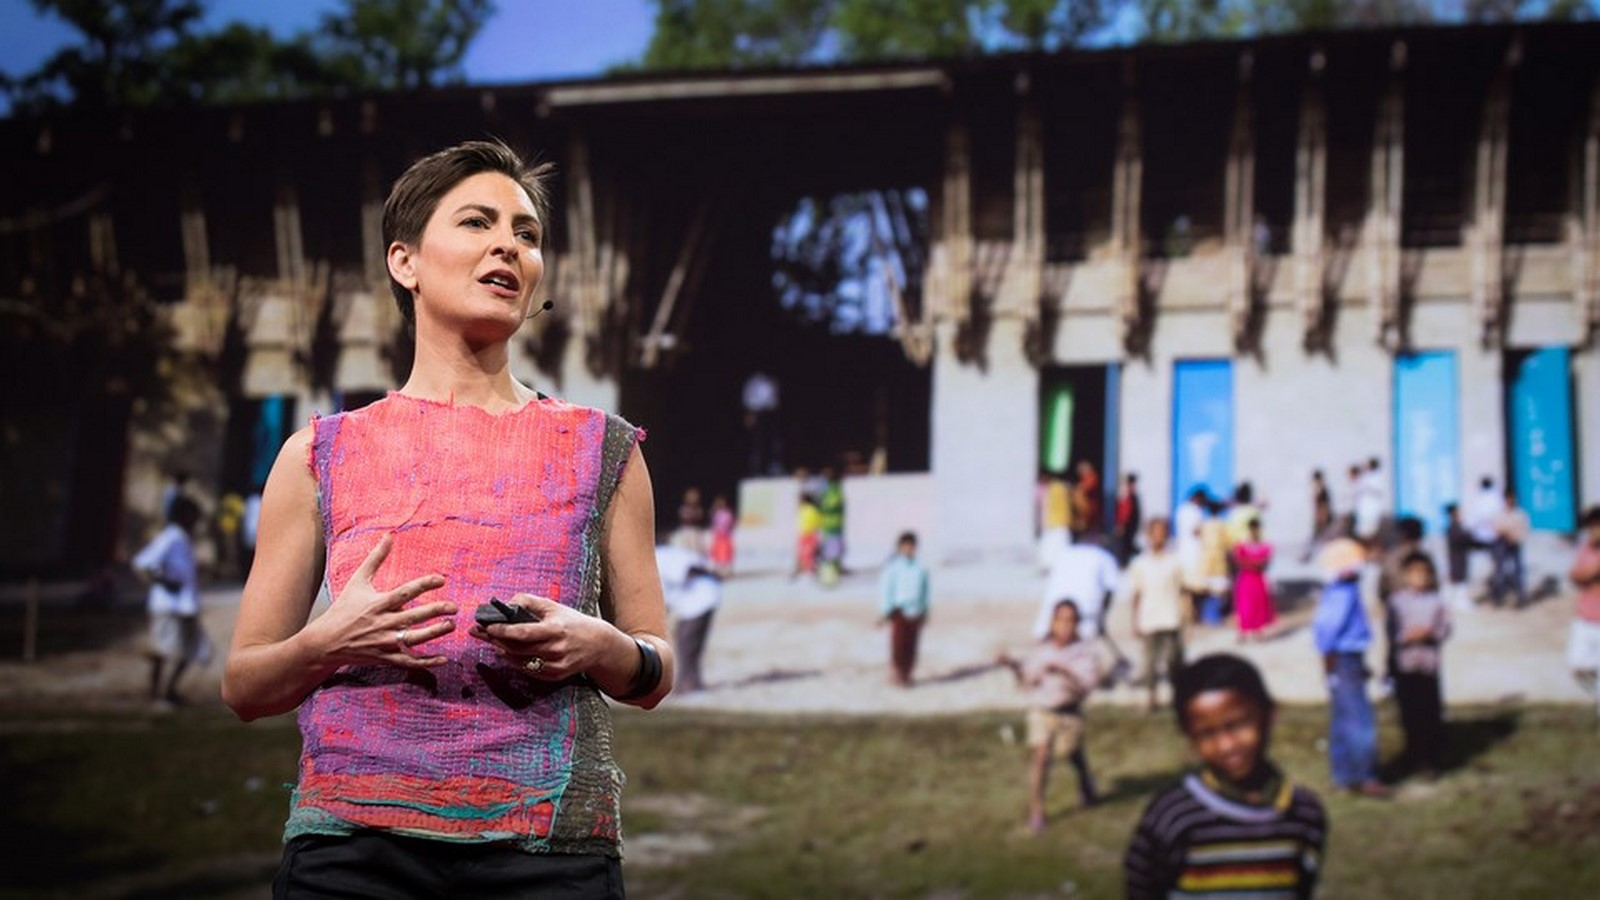 Anna Heringer- The warmth and wisdom of mud buildings